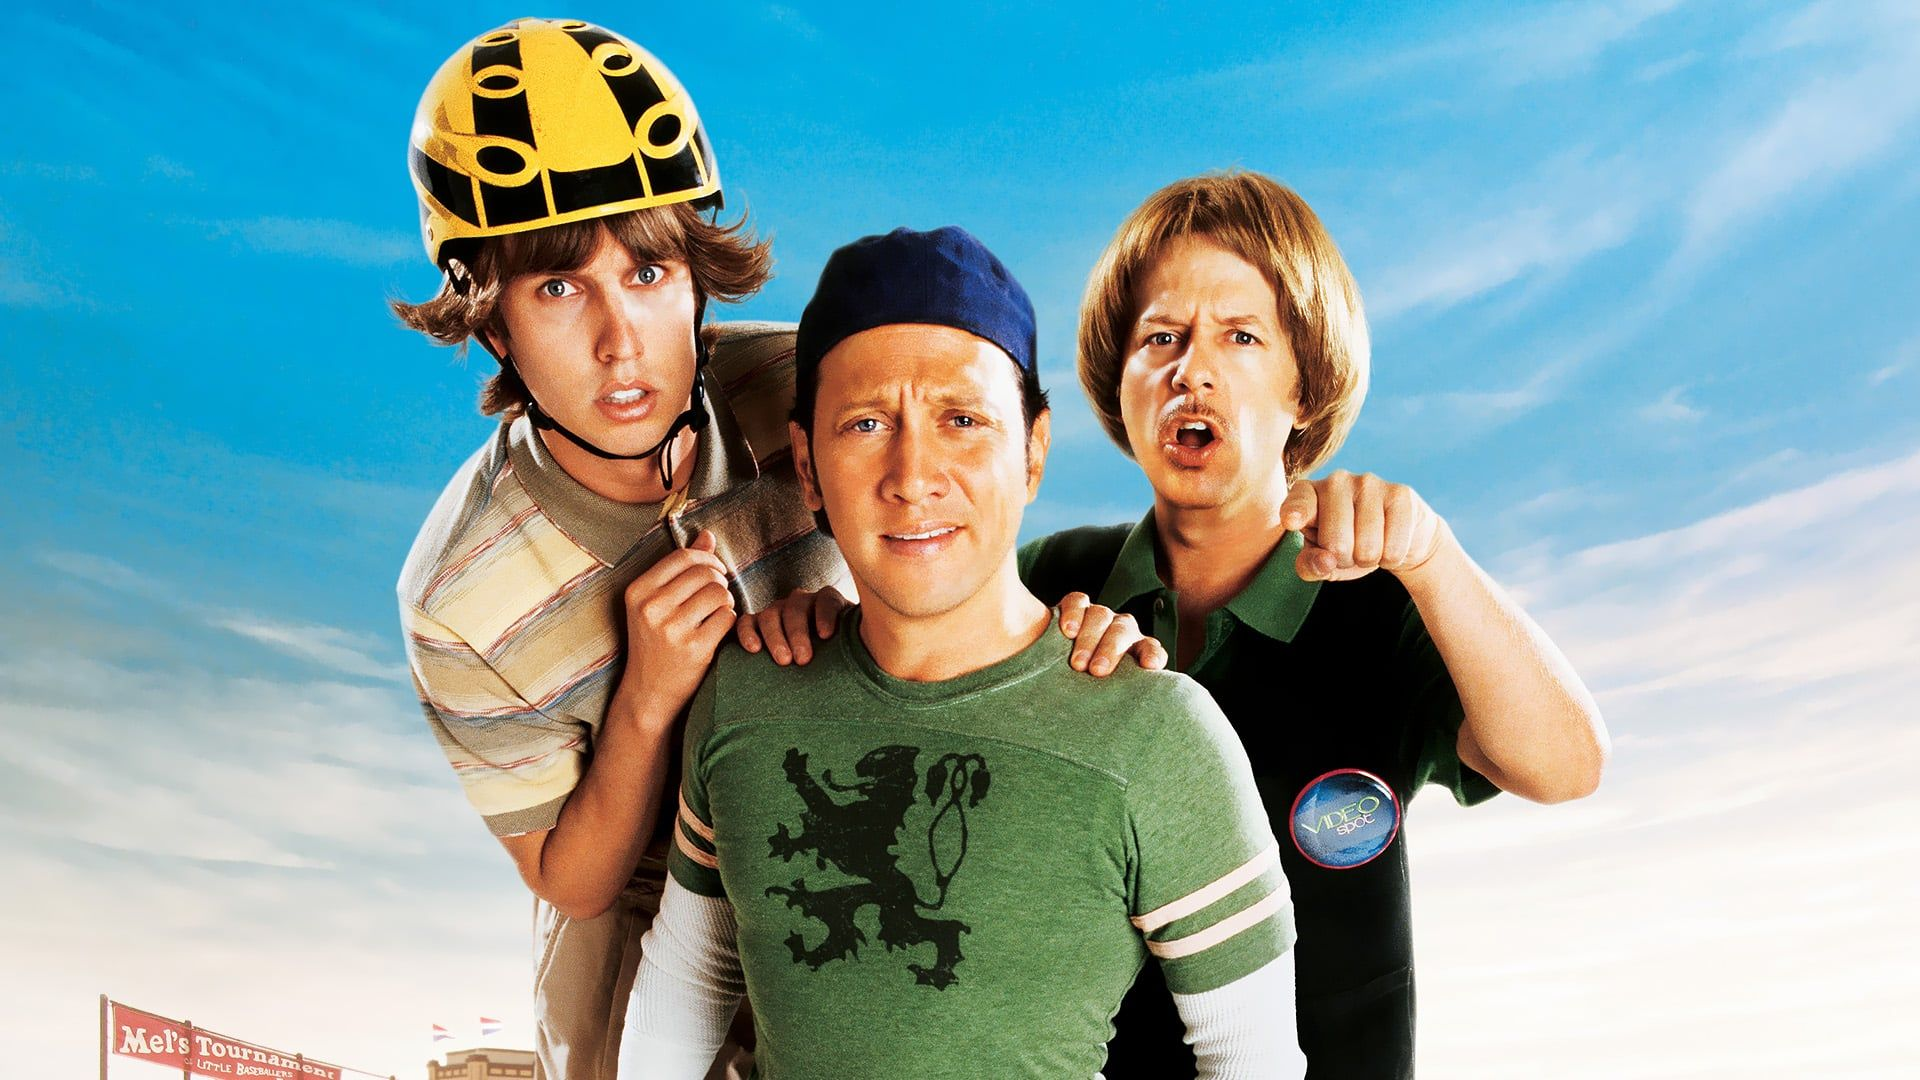 The Benchwarmers 2006 Watch On Starz Or Streaming Online Reelgood If you like the benchwarmers, you may like: the benchwarmers 2006 watch on